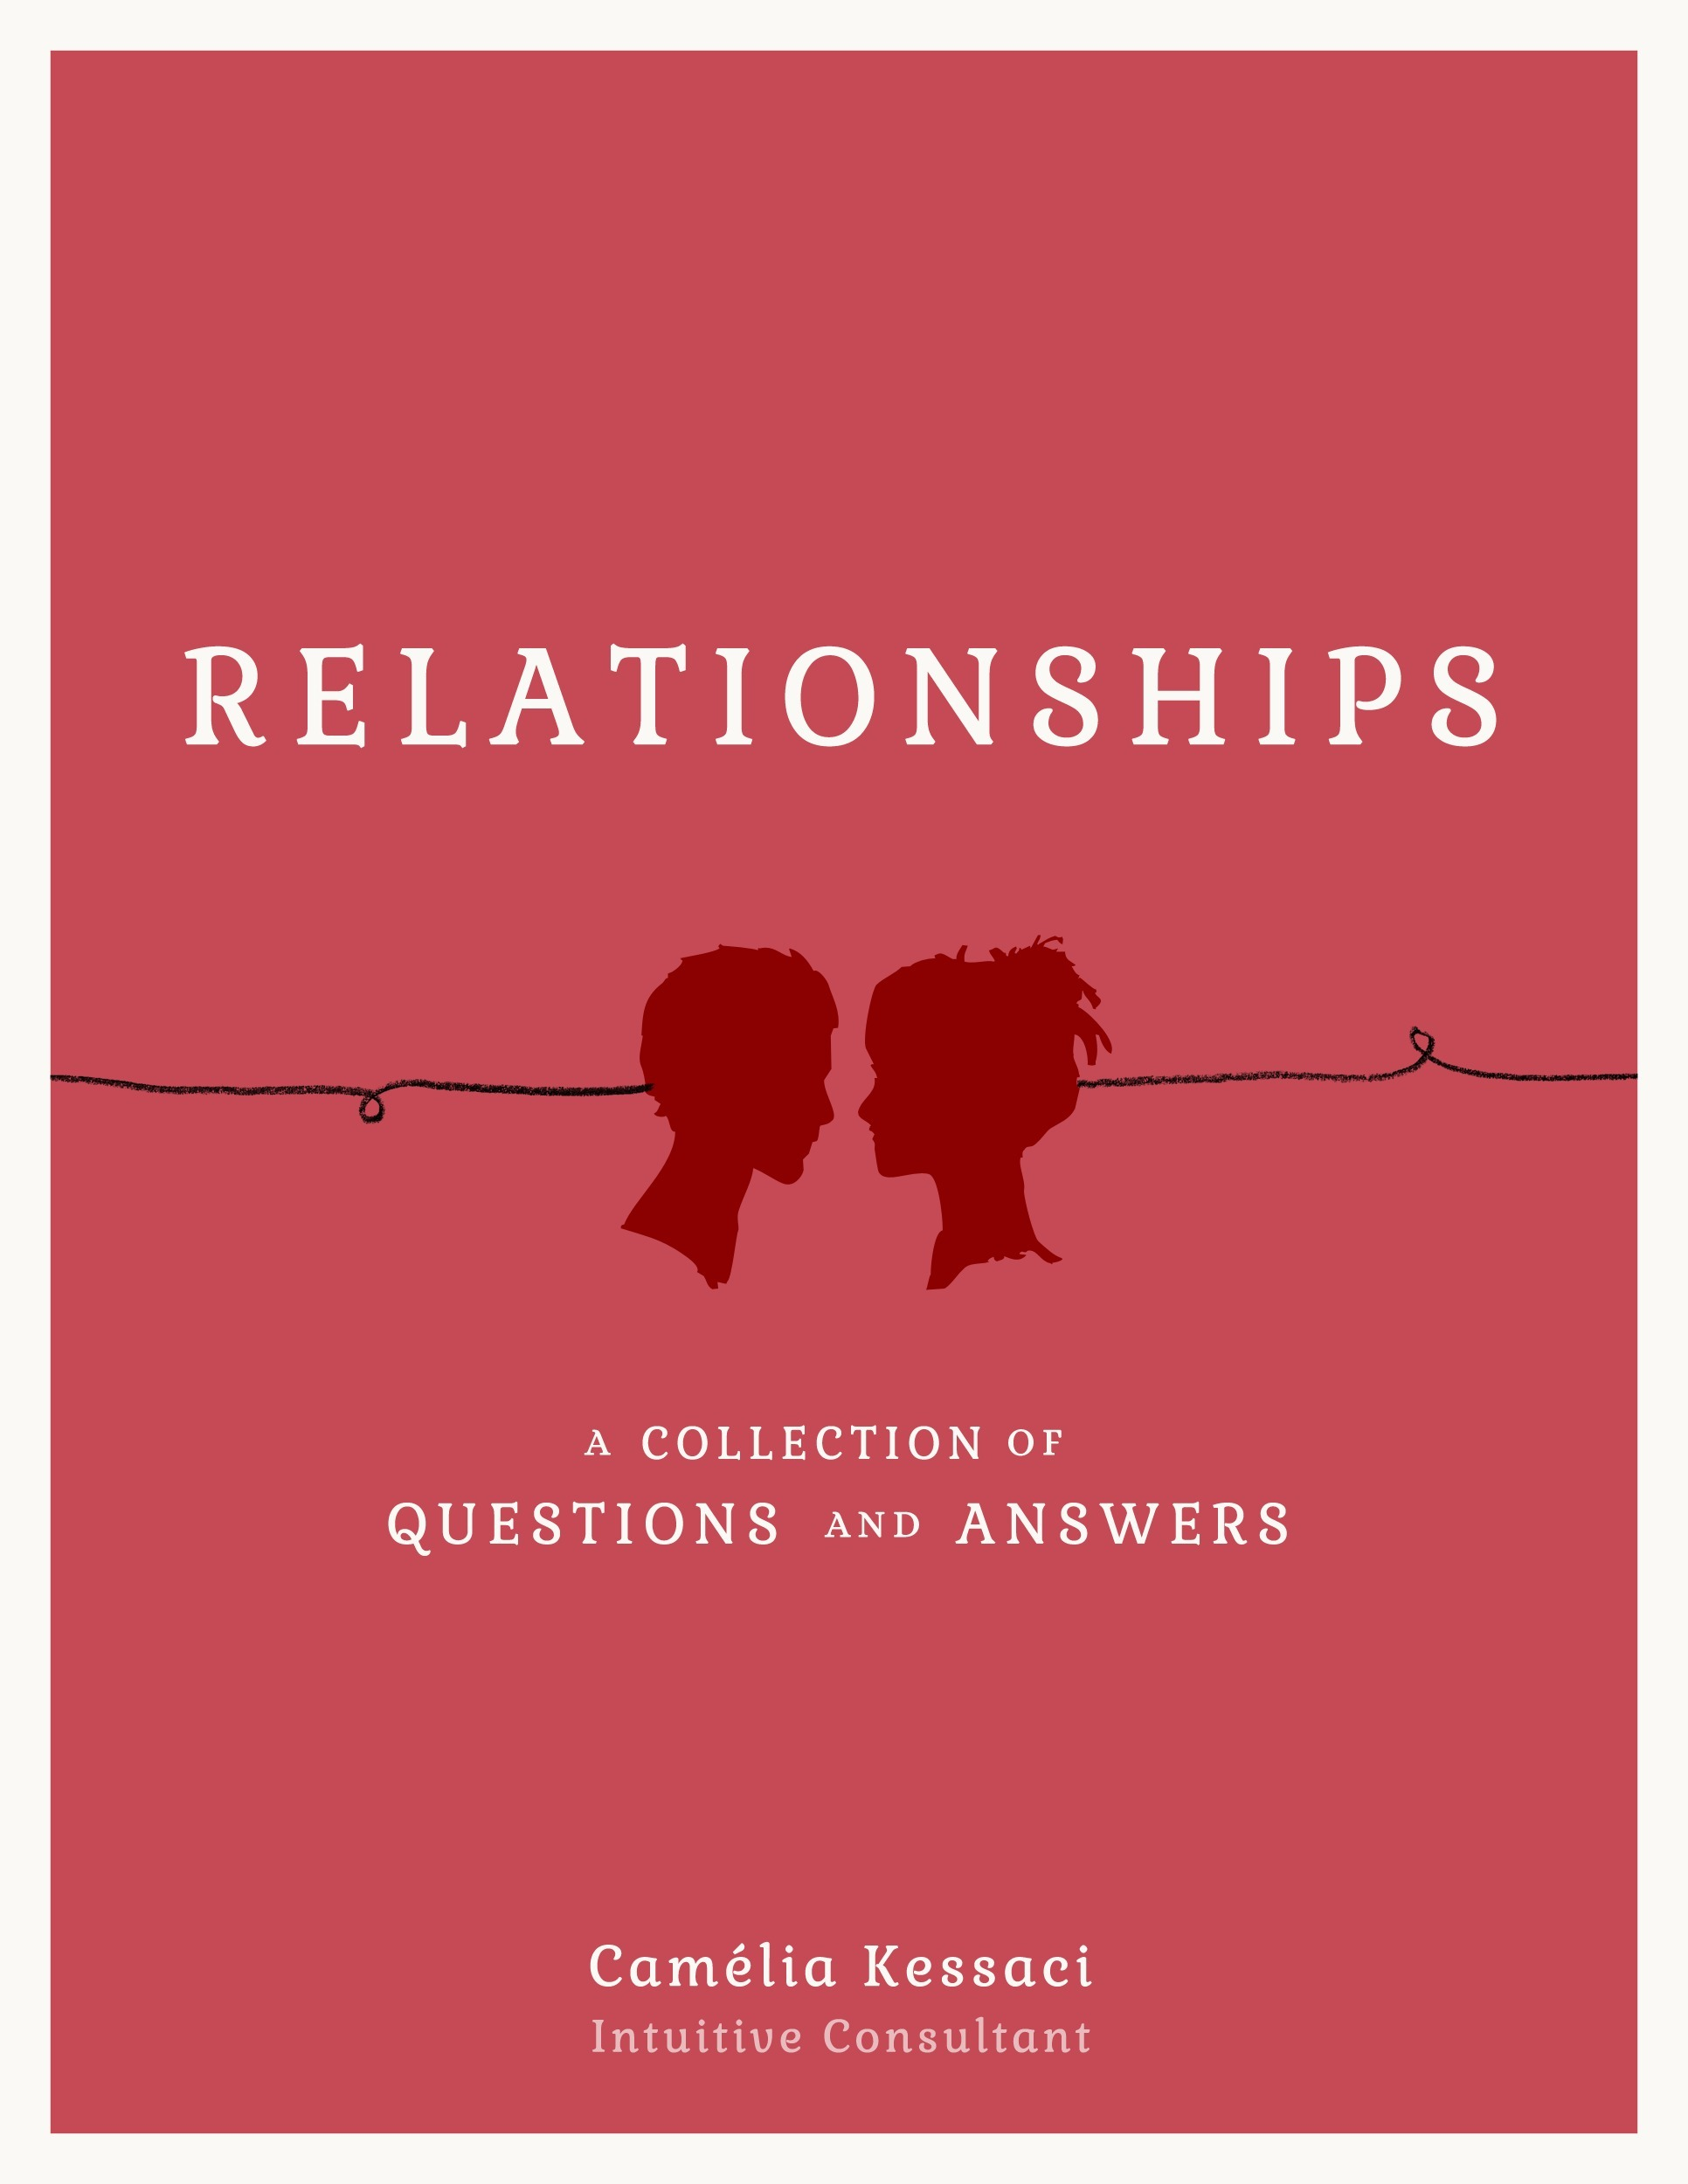 Relationships: A Collection of Questions and Answers  by  Camélia Kessaci